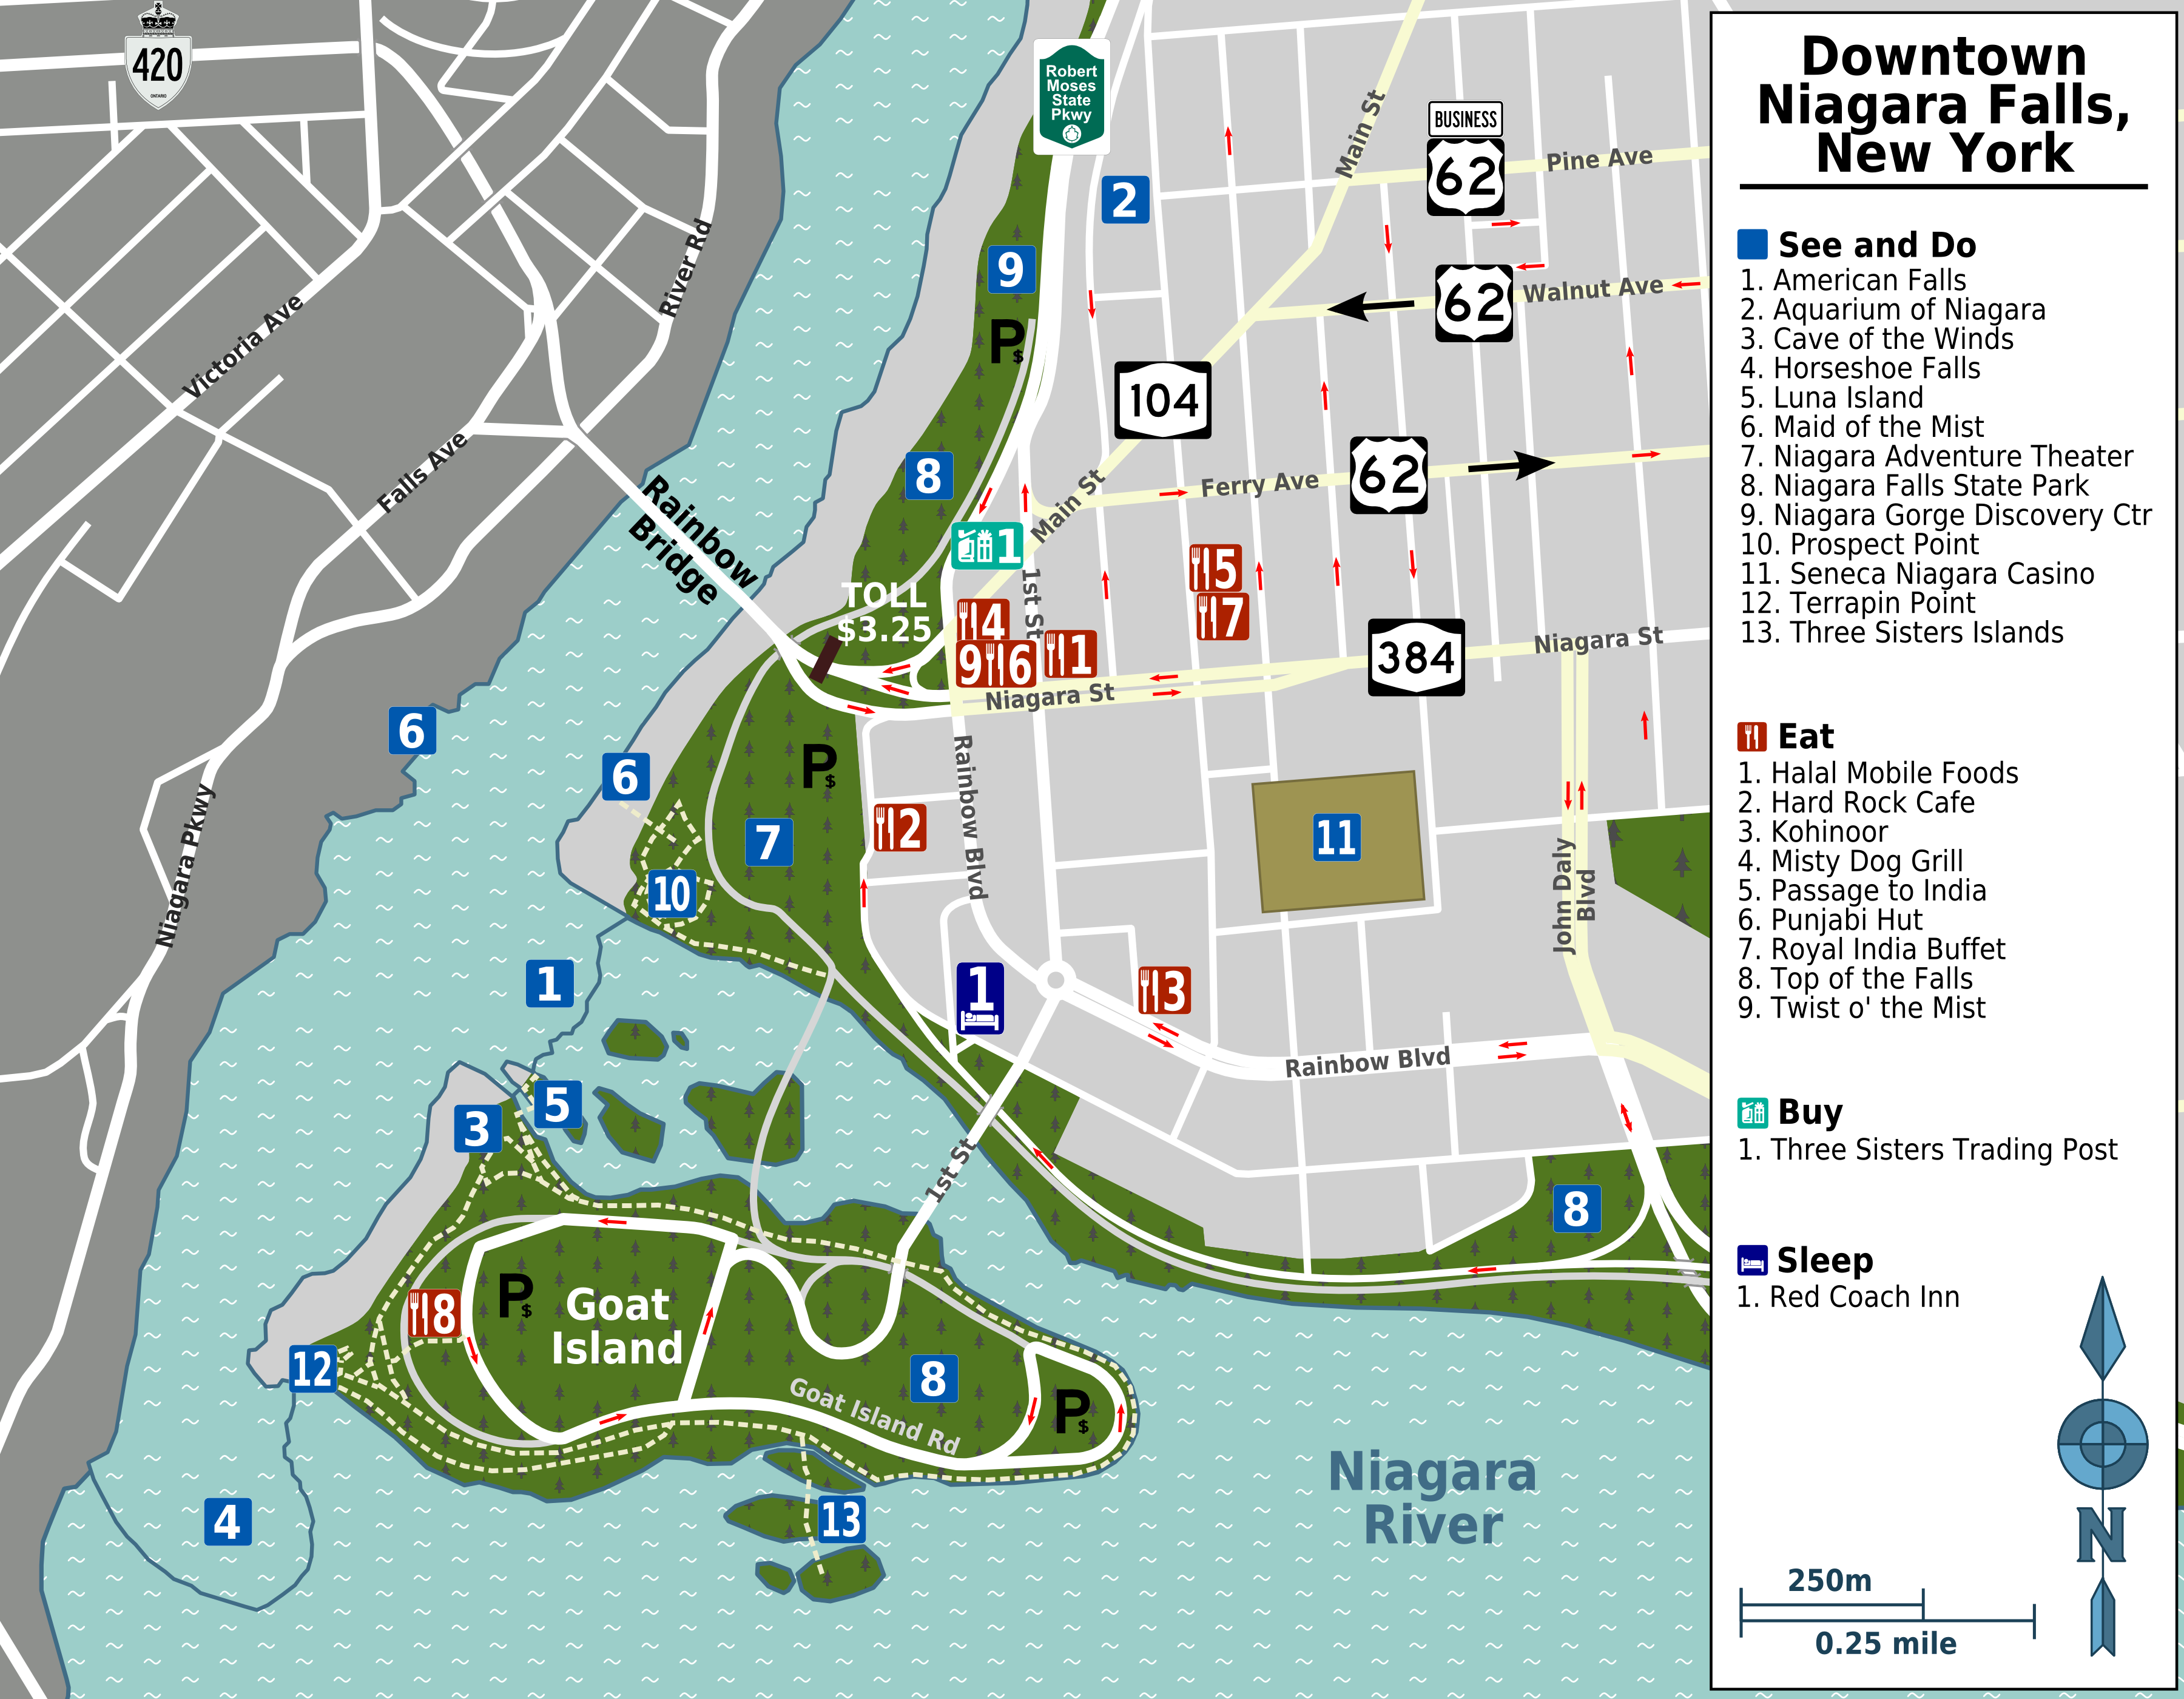 File:Map - Niagara Falls NY - Downtown.png - Wikimedia Commons on skylon tower, whistler map, cave of the winds, niagra falls hotel map, horseshoe falls, goat island, love canal map, hudson river, mount rushmore map, niagara river map, toronto map, philadelphia map, whitestone map, montreal map, iguazu falls, manhattan map, bridal veil falls, st. catharines map, yosemite national park, canadian rockies, maid of the mist, new york map, edmonton map, grand canyon map, washington dc map, victoria falls, quebec city, charleston map, welland canal map, rainbow bridge, aquarium of niagara map, amazon river, american falls, lake superior map, new orleans map,